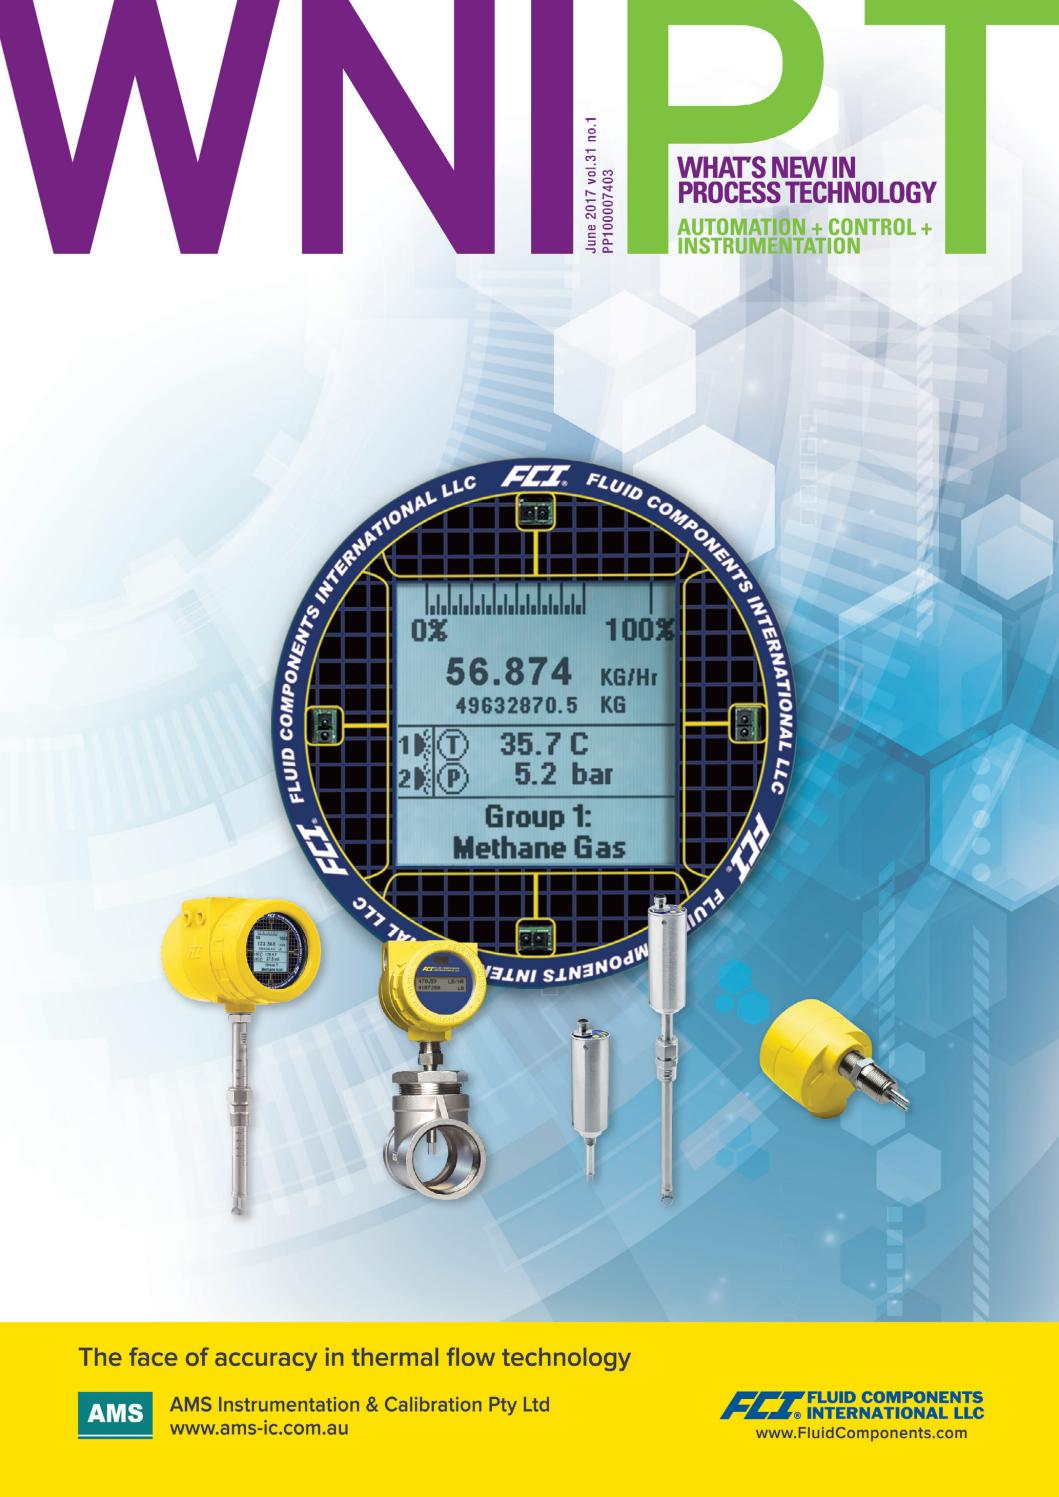 What's New in Process Technology Jun 2017 by Westwick-Farrow Media